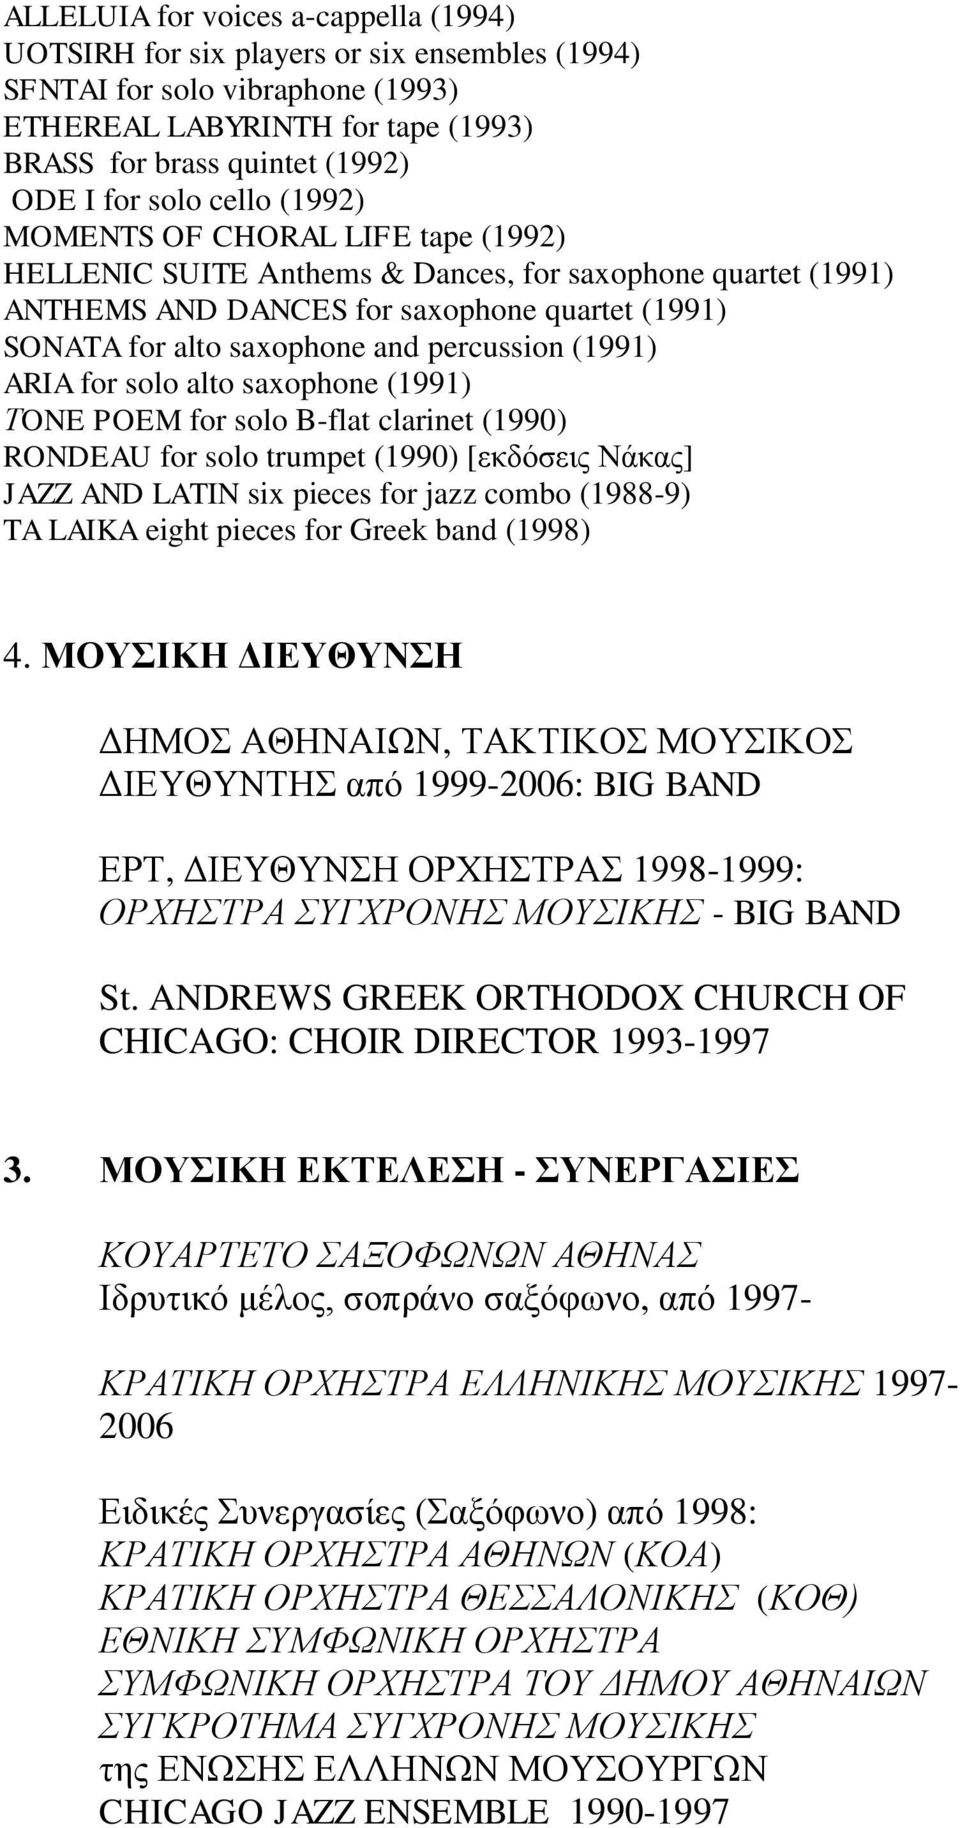 percussion (1991) ARIA for solo alto saxophone (1991) ΤONE POEM for solo B-flat clarinet (1990) RONDEAU for solo trumpet (1990) [εκδόσεις Νάκας] JAZZ AND LATIN six pieces for jazz combo (1988-9) TA